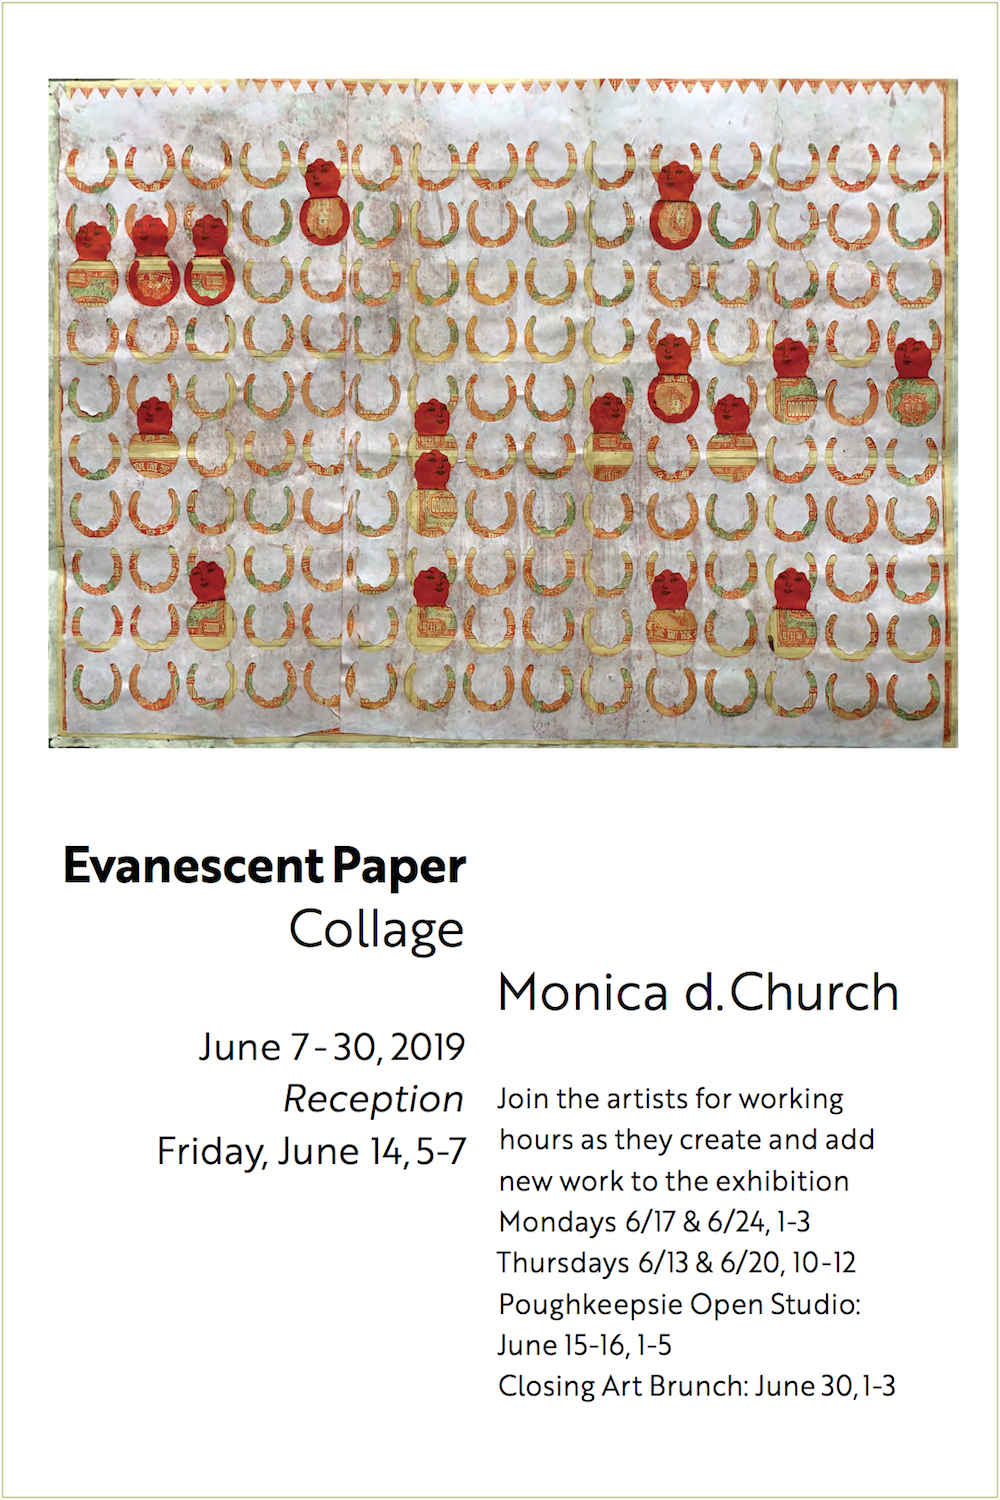 monica_d_church_evanescent_paper_church.jpg